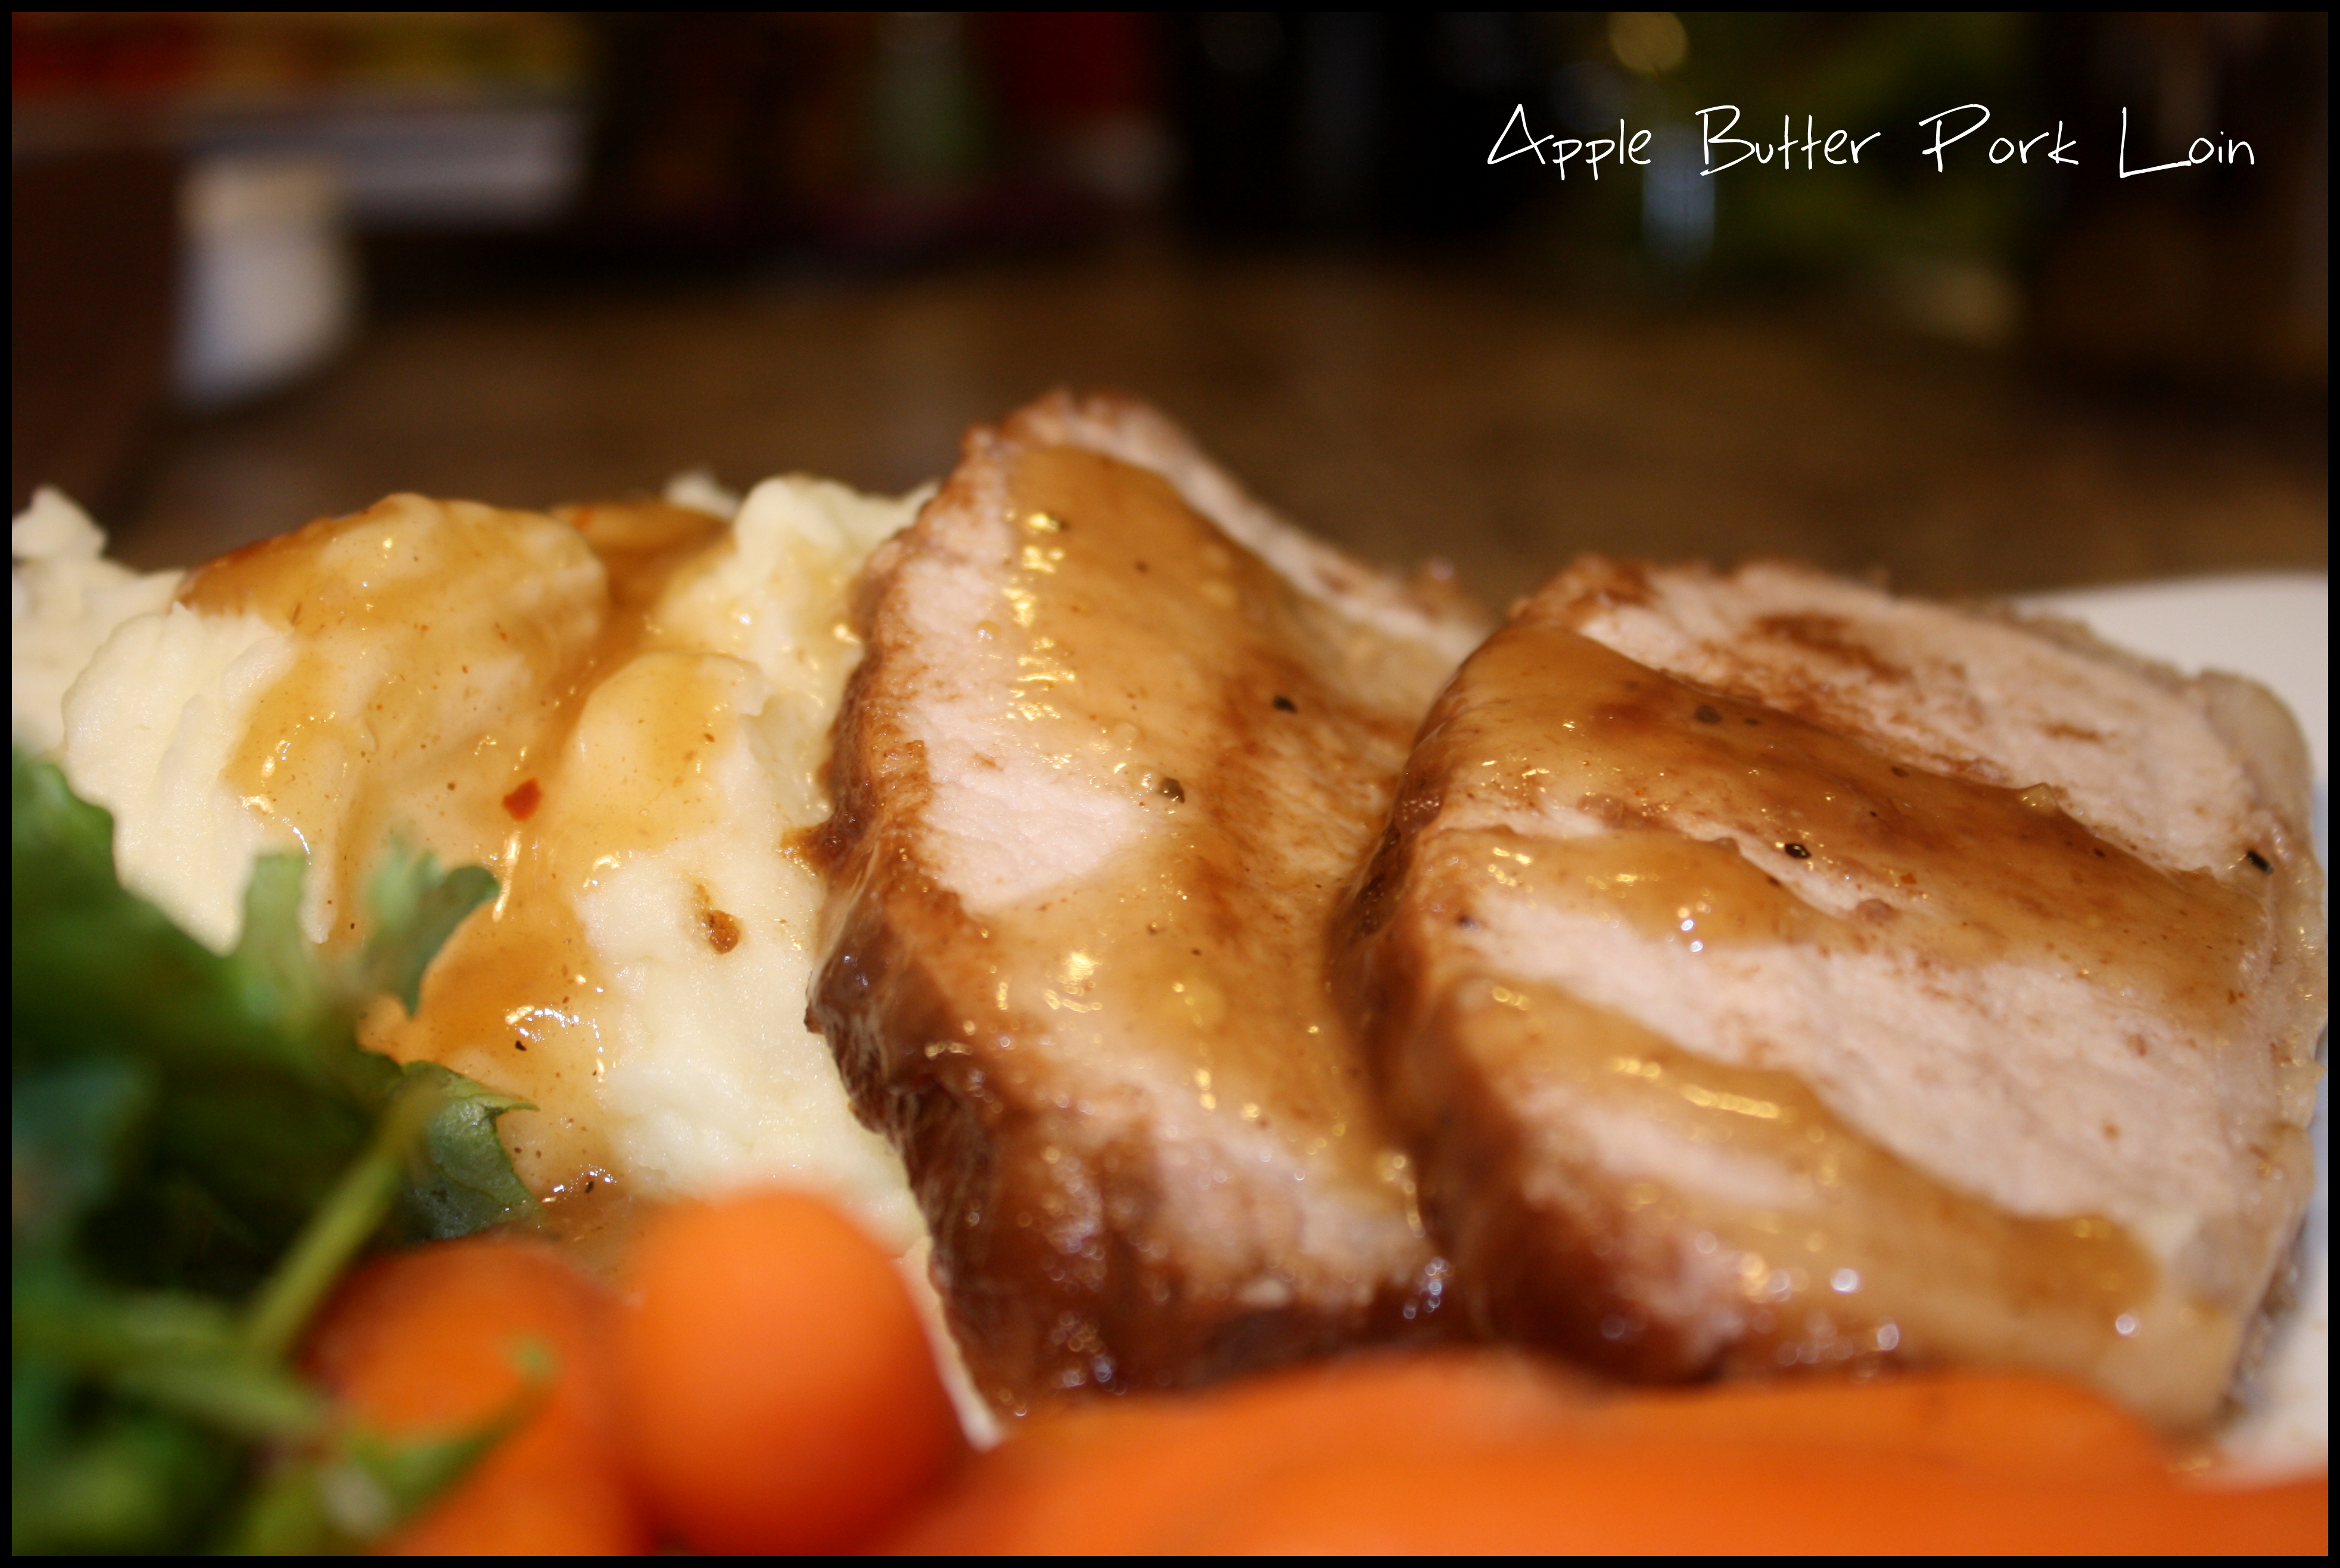 ... with a recipe for Apple Butter Pork Loin} | Come Sit in My Kitchen